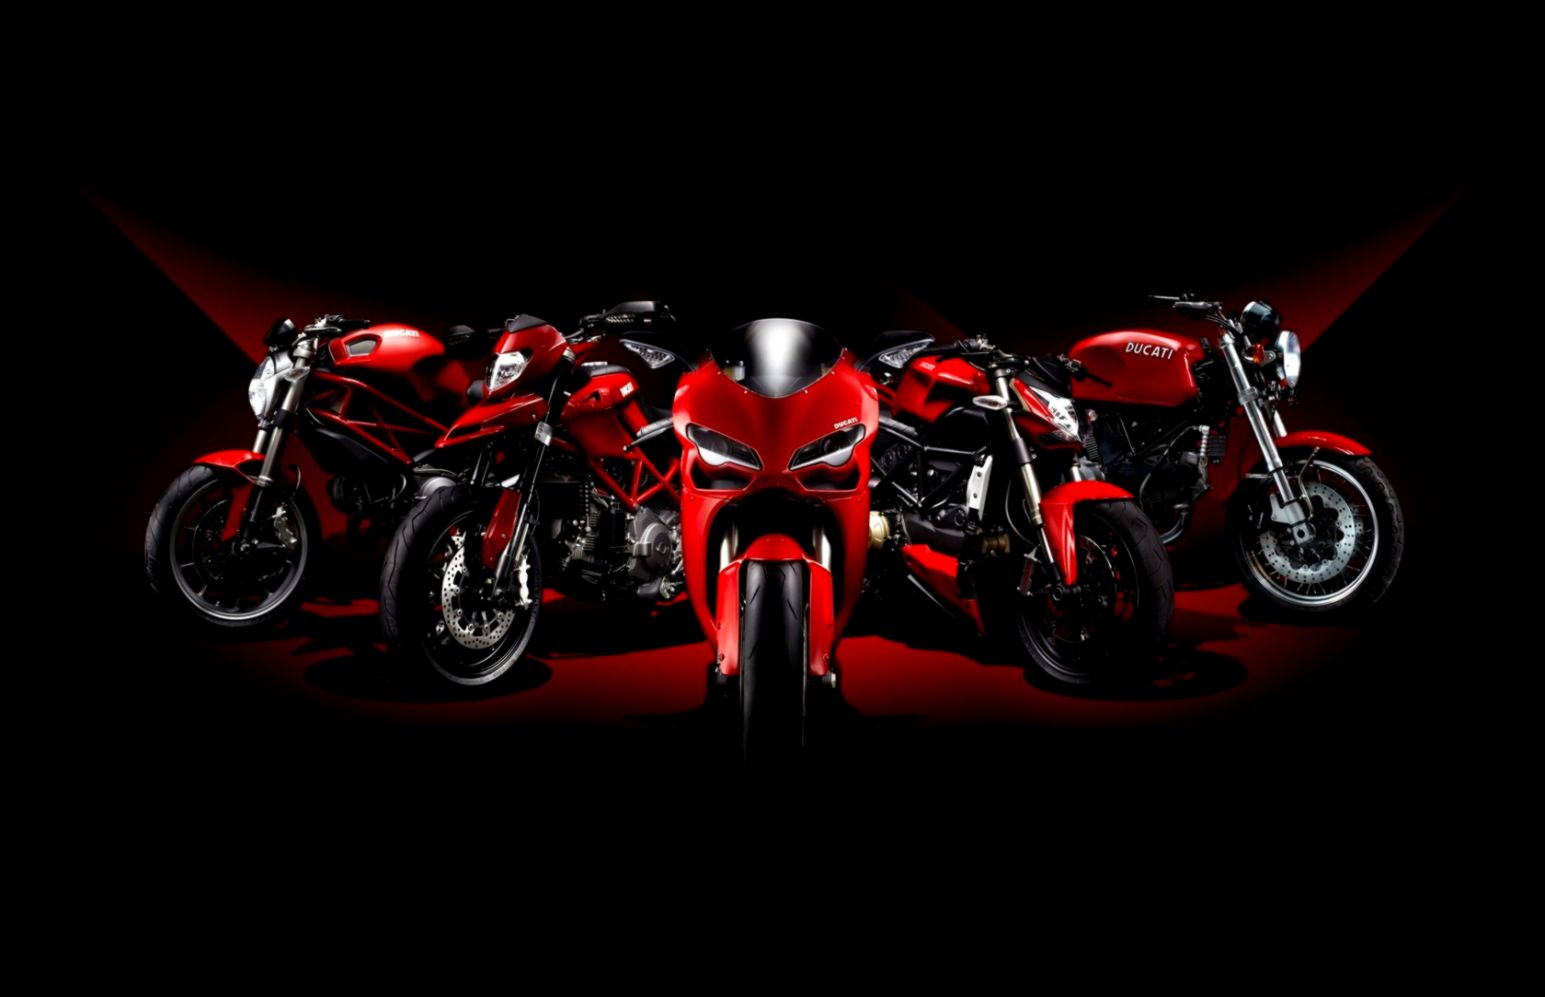 All Family Ducati Motorcycle Wallpaper HD 13741 Wallpaper  High